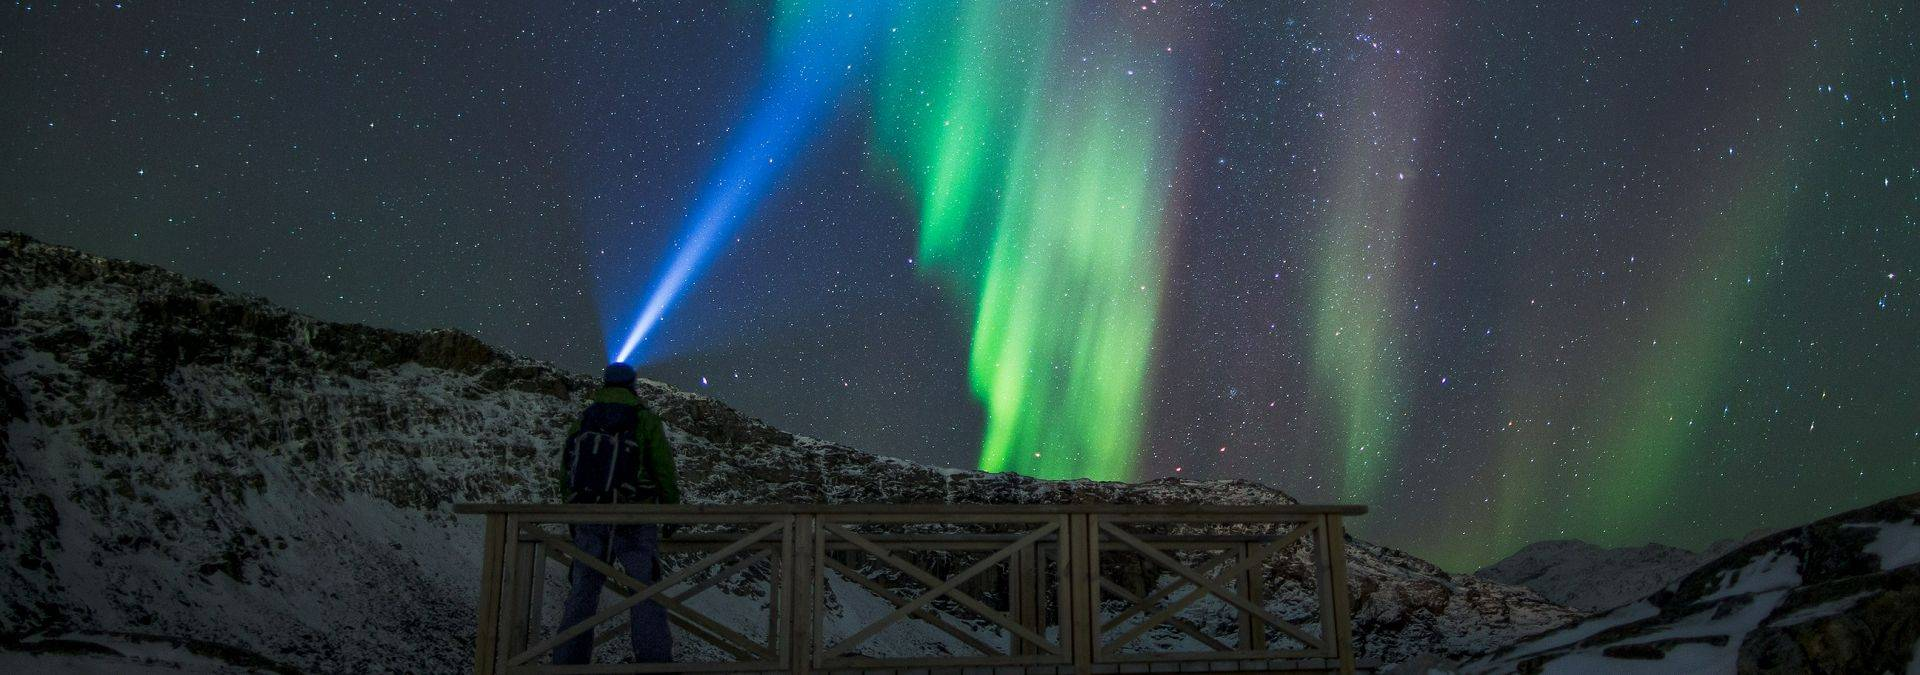 Nuuk autumn northern lights - Photo by Mads Pihl - Visit Greenland